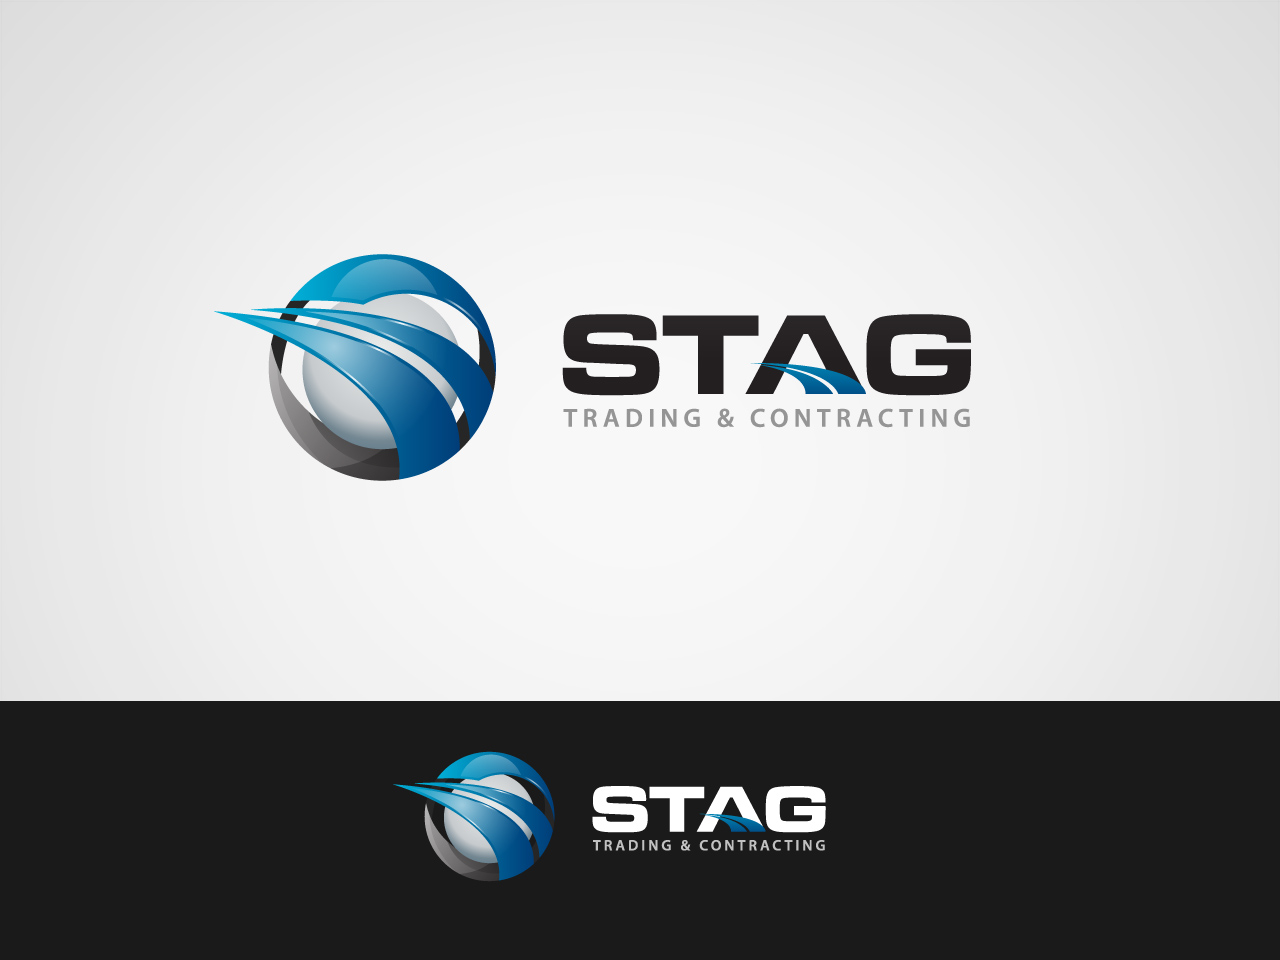 Logo Design by jpbituin - Entry No. 157 in the Logo Design Contest Captivating Logo Design for STAG Trading & Contracting.